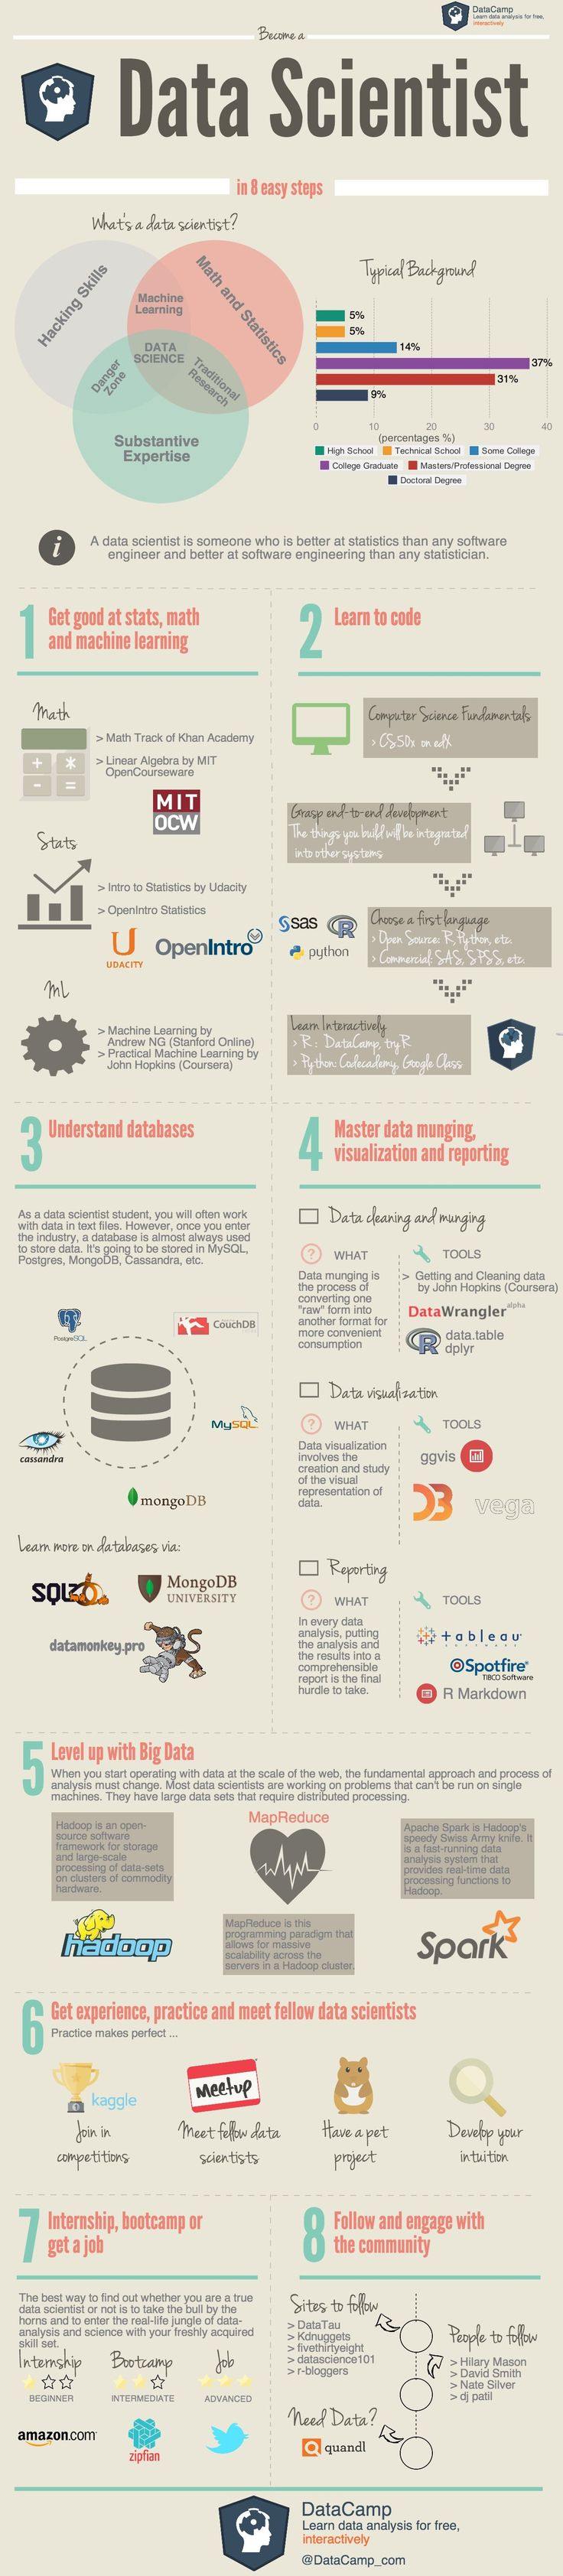 Become a Data Scientist in 8 Easy Steps #infographic #Data #DataScientist